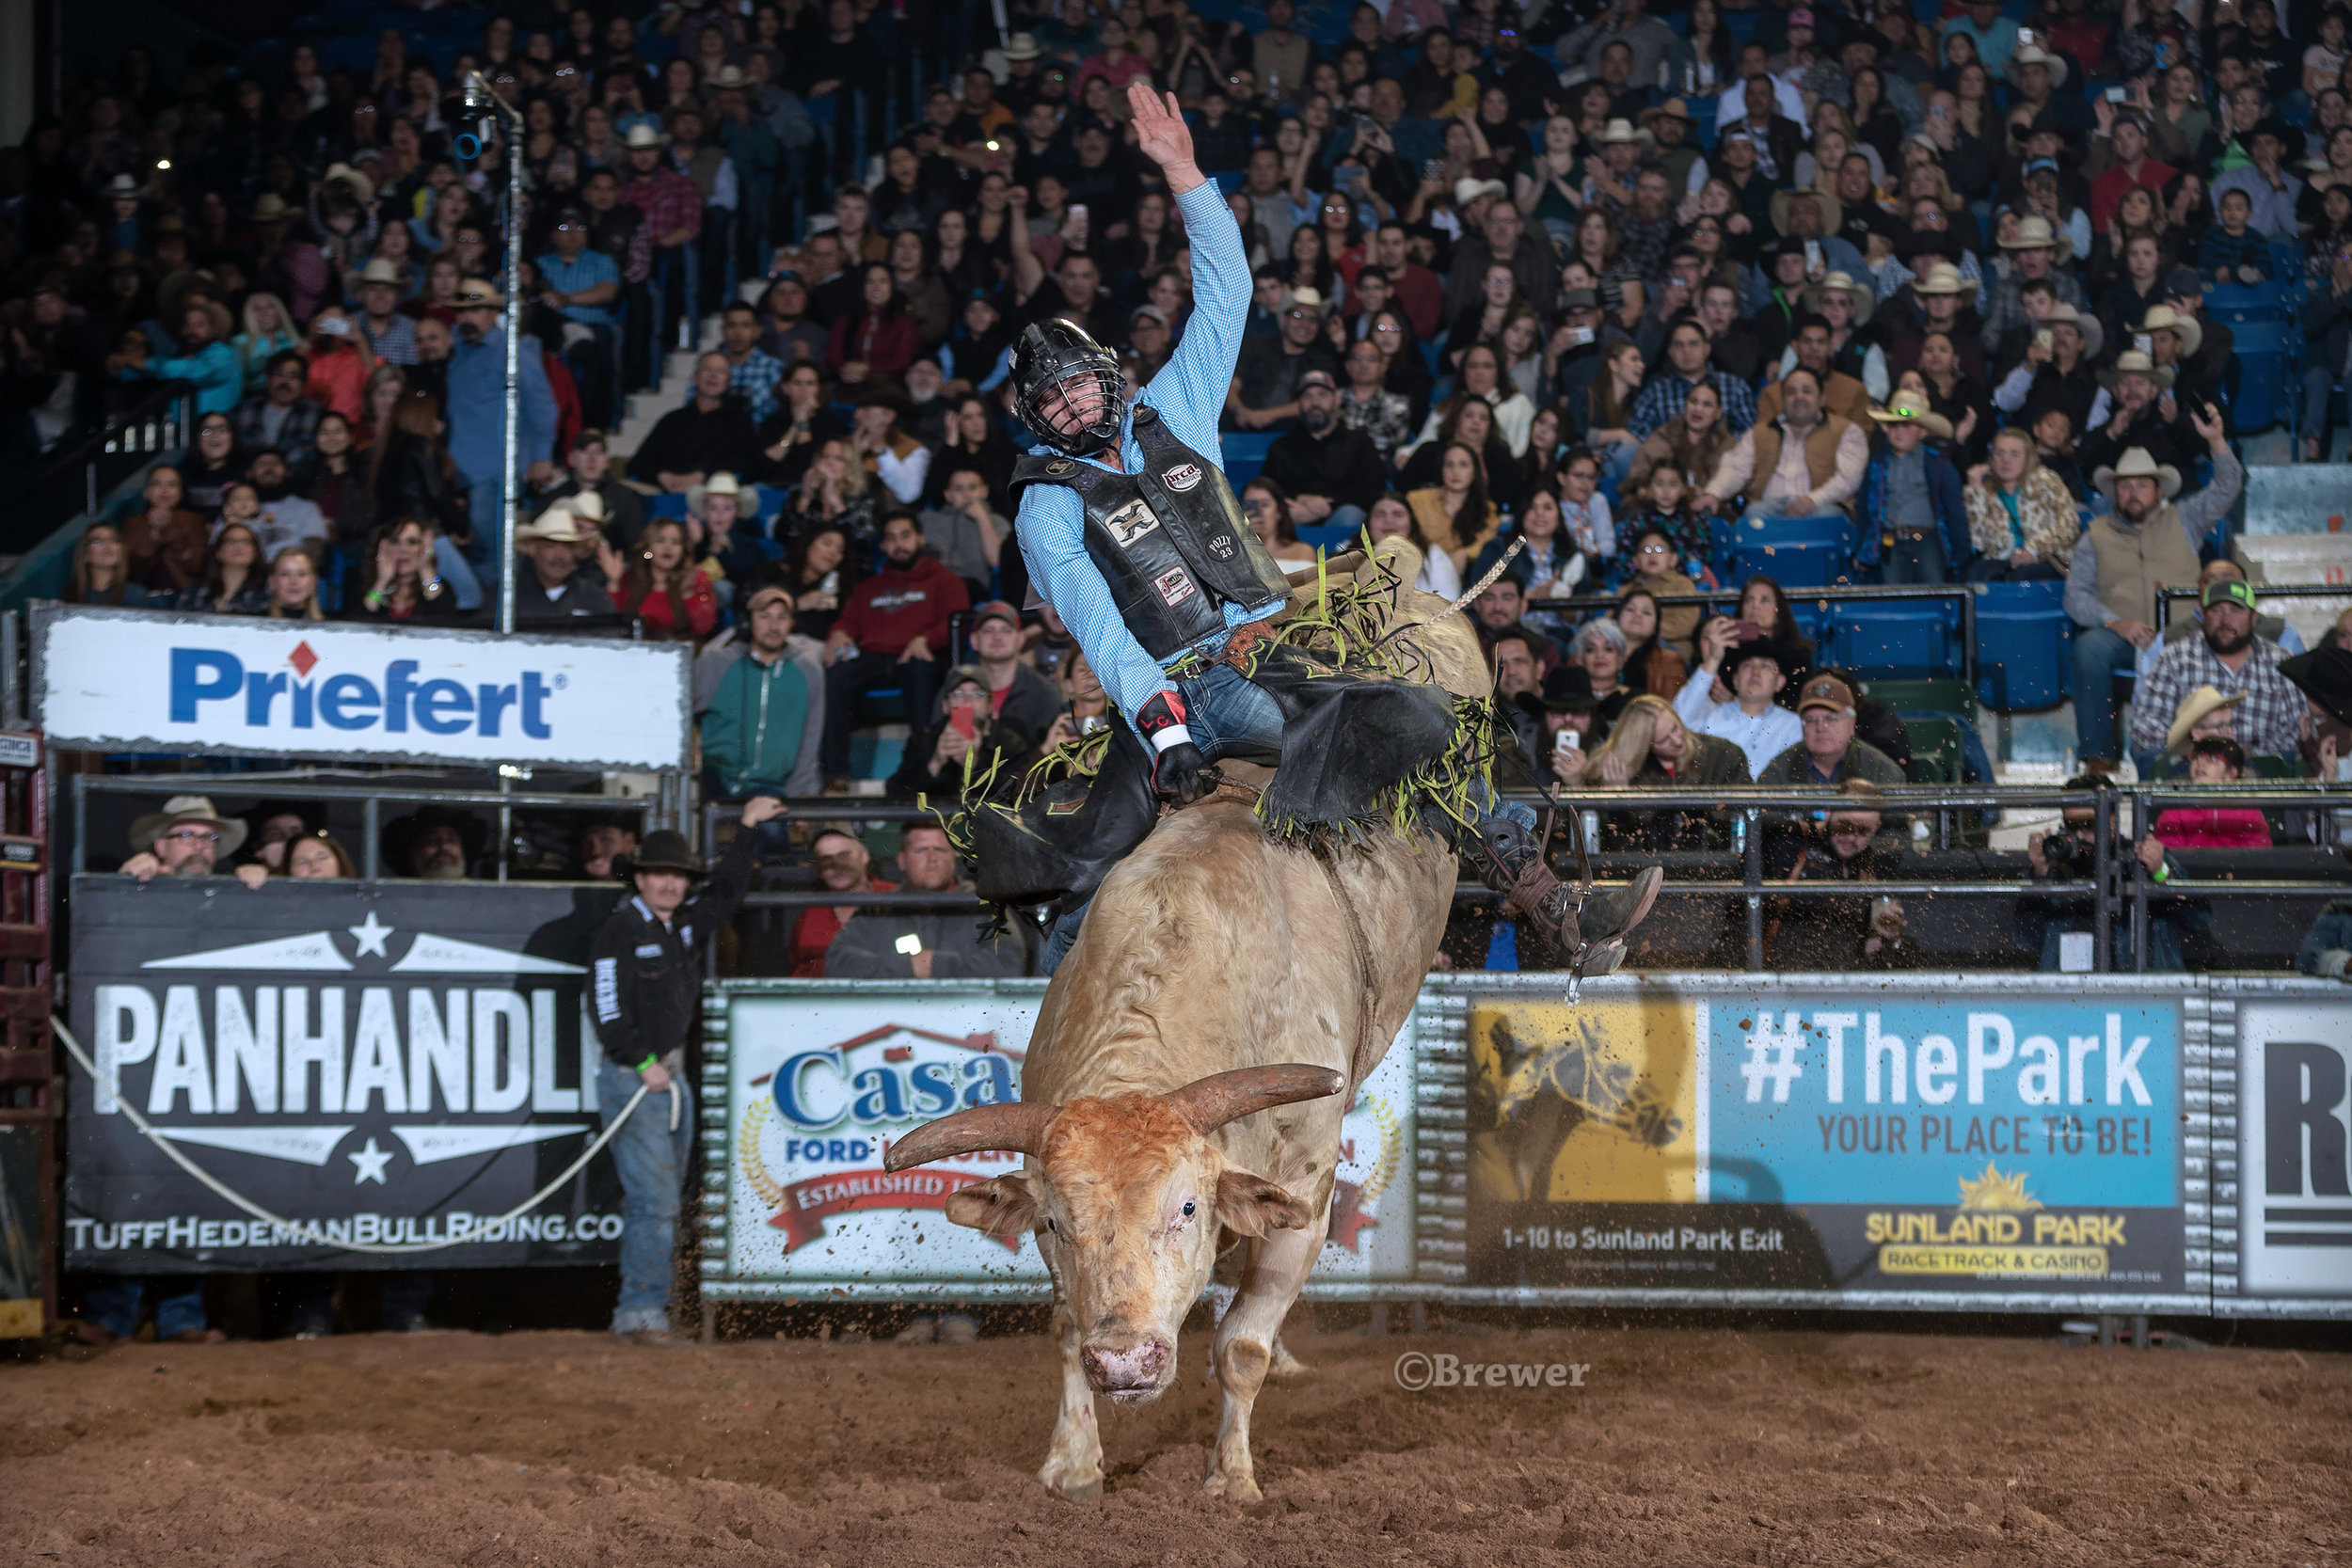 Laramie Craigen, Hampshire, Texas, wins Round one and scored the highest marked ride of the night on 2801 Speckled Chicken, owned by Rawson Bucking Bulls